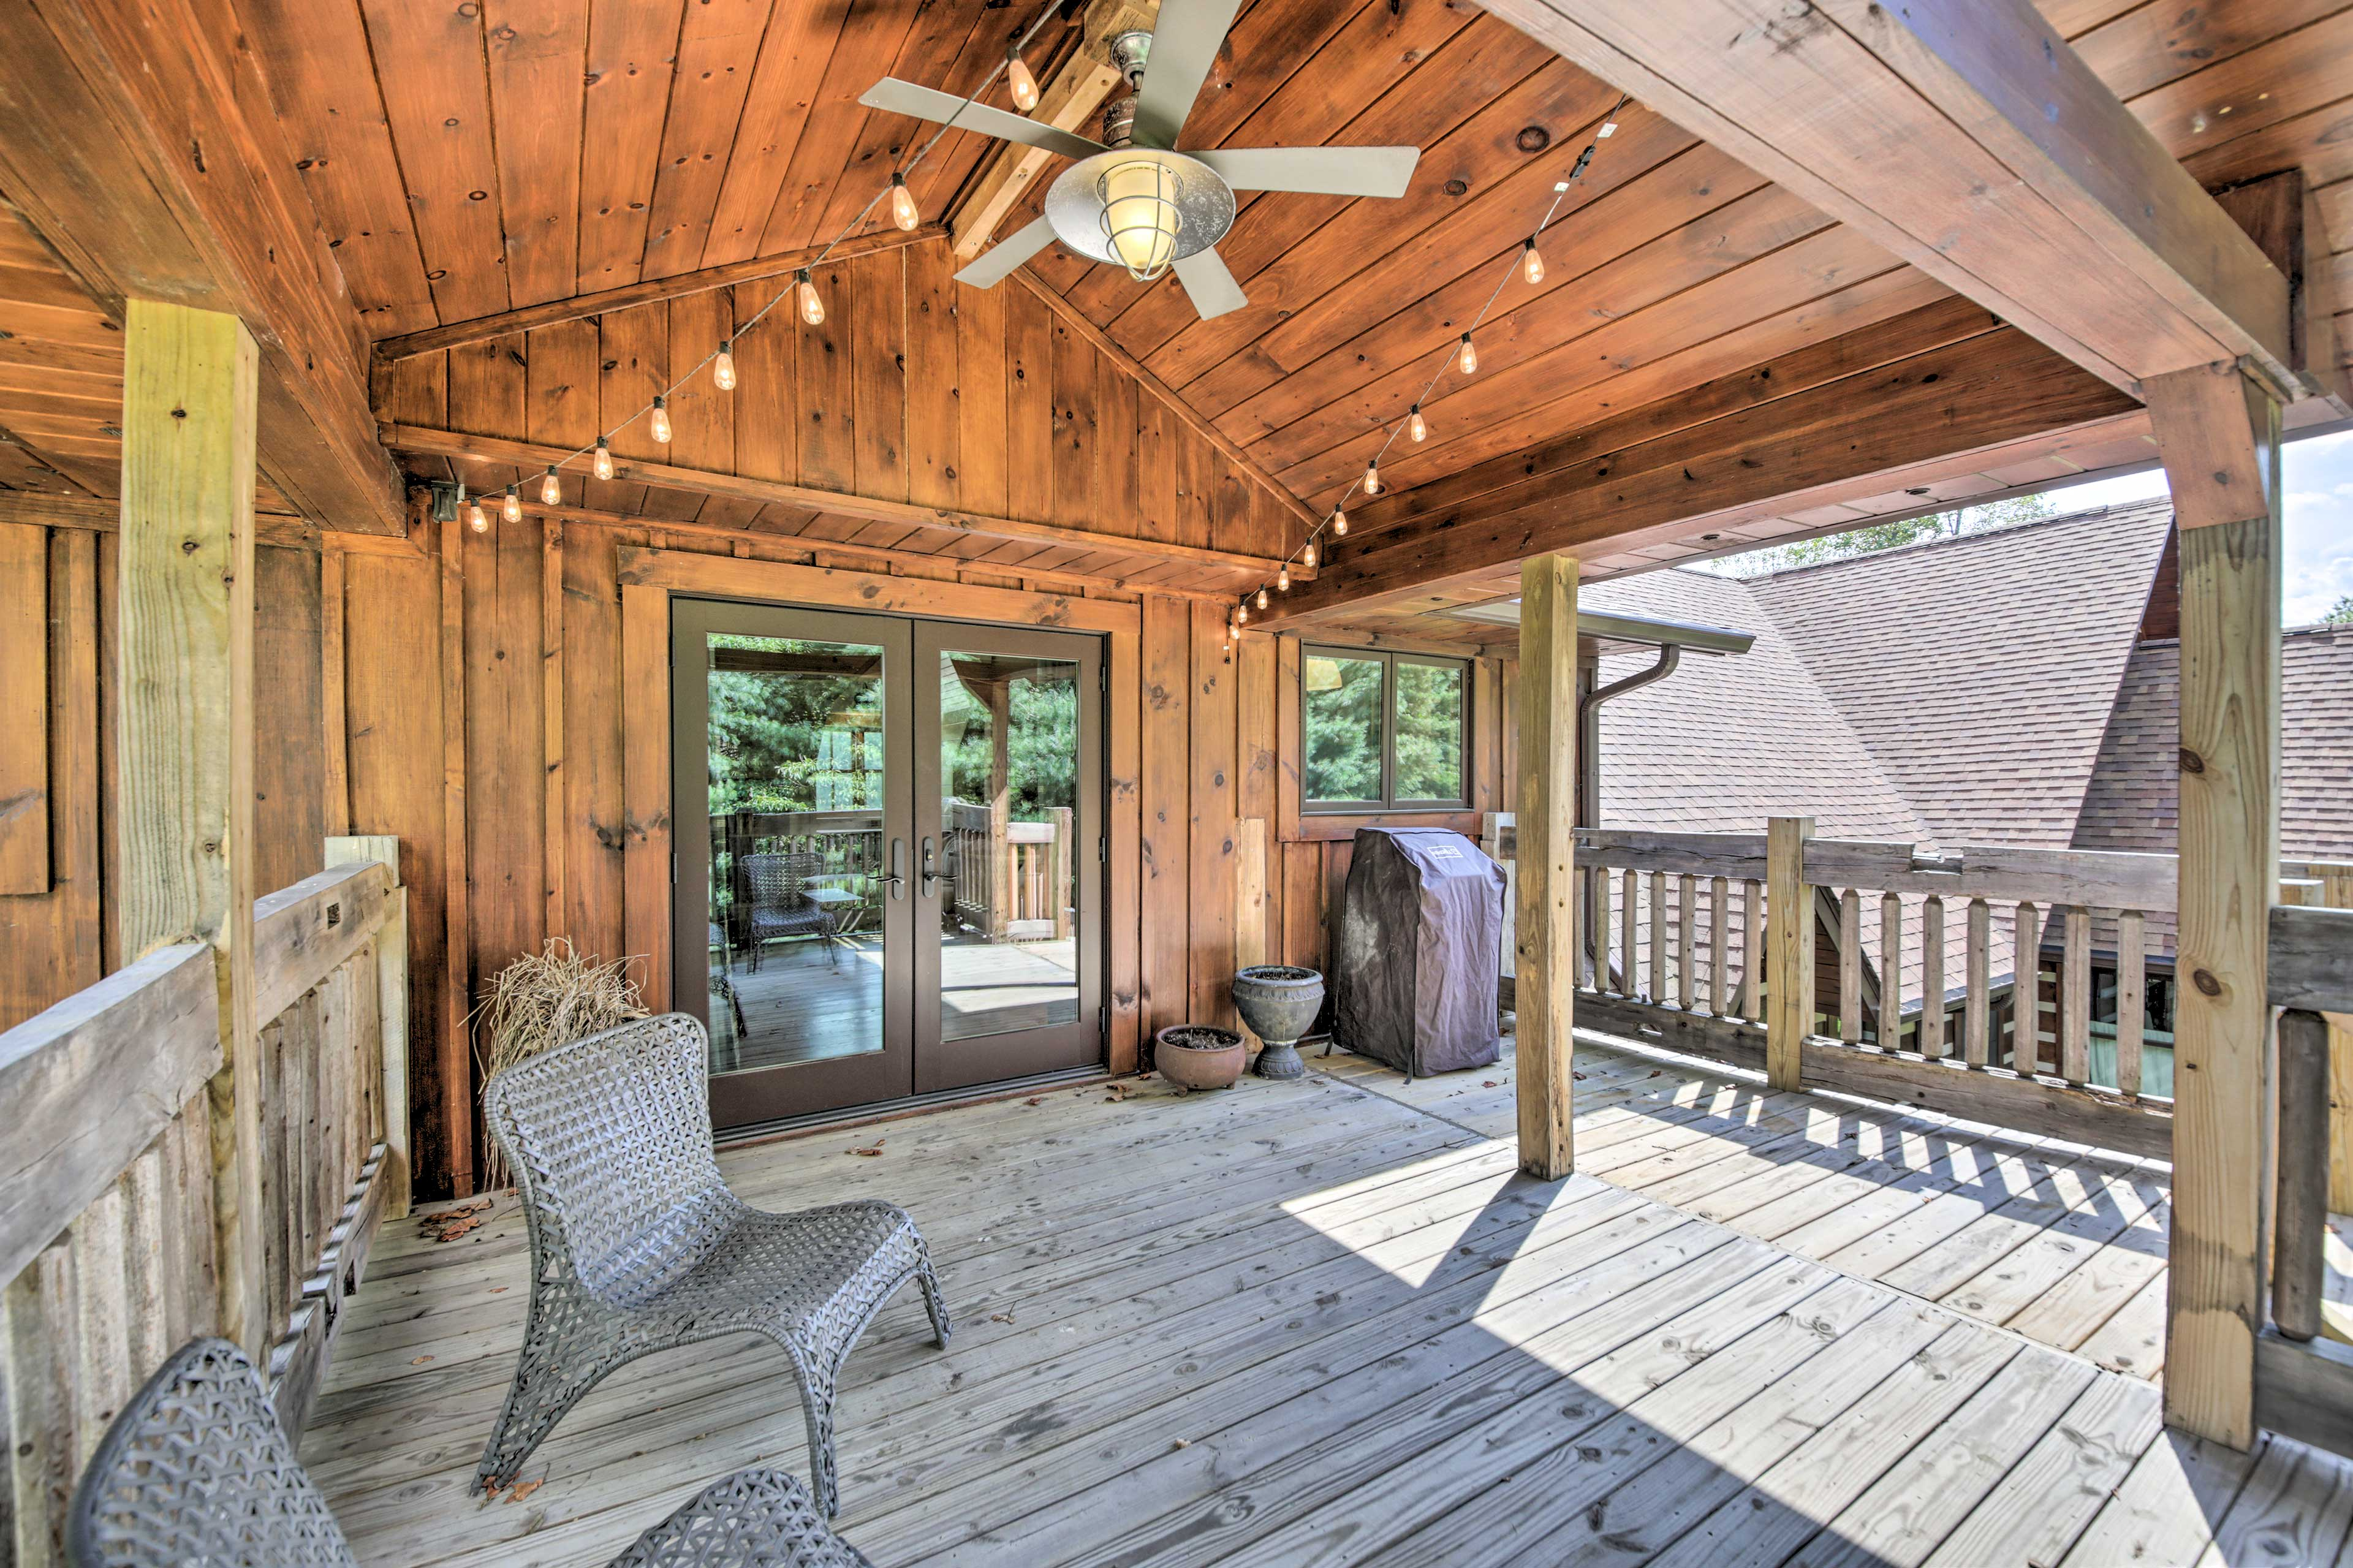 The cabin features 1 bedroom, 1 bath, and a nice back deck.